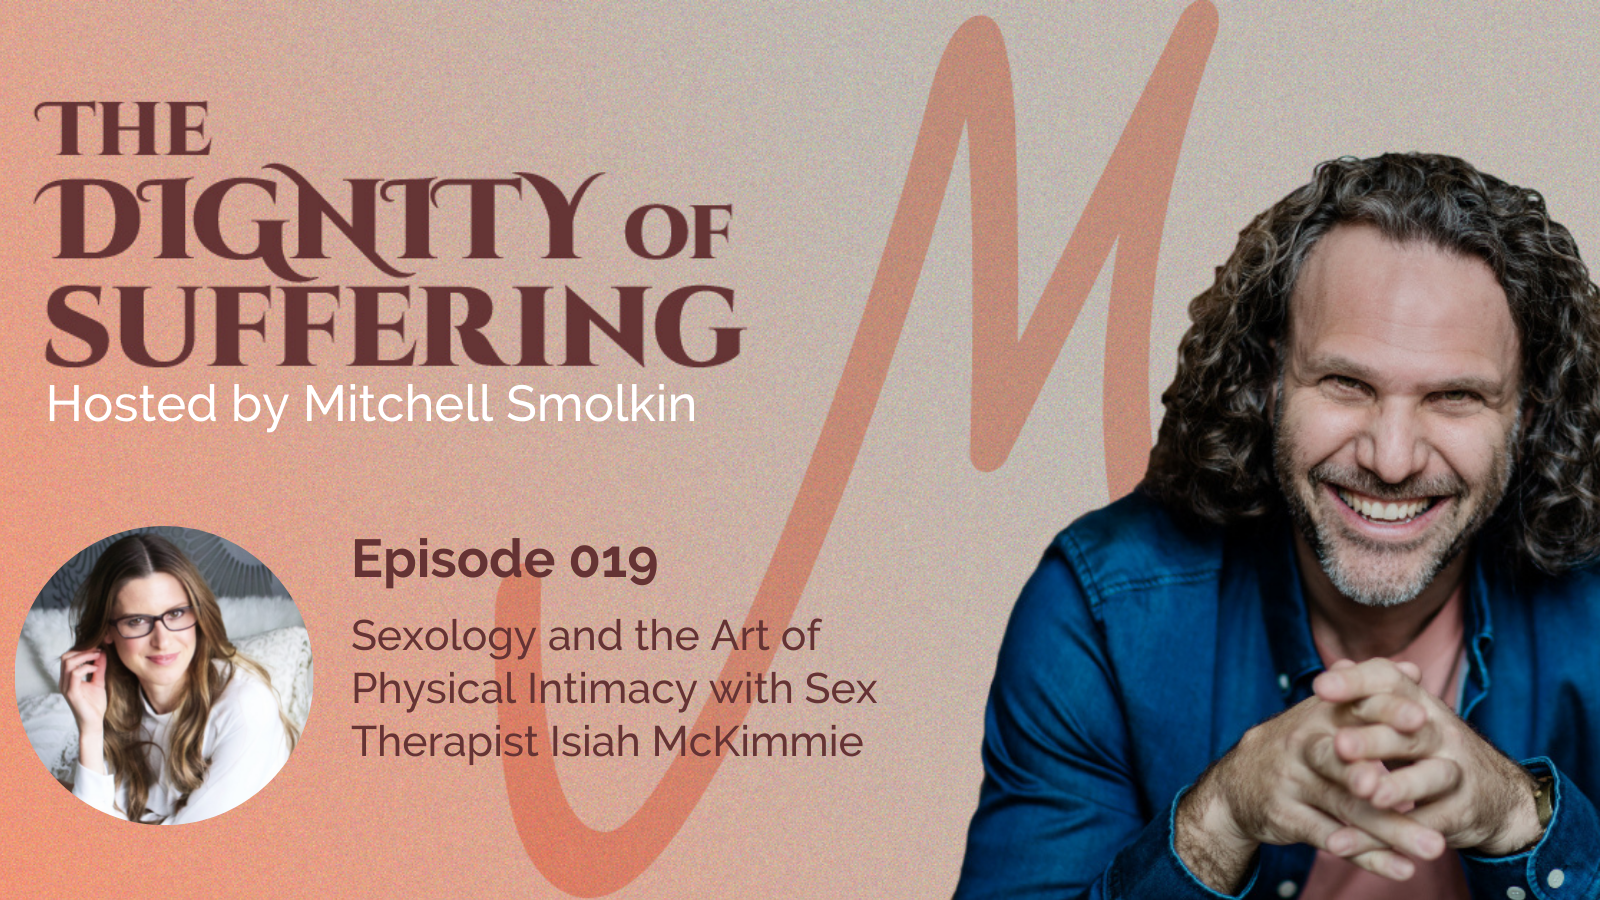 Episode 019: Sexology and the Art of Physical Intimacy with Sex Therapist Isiah McKimmie